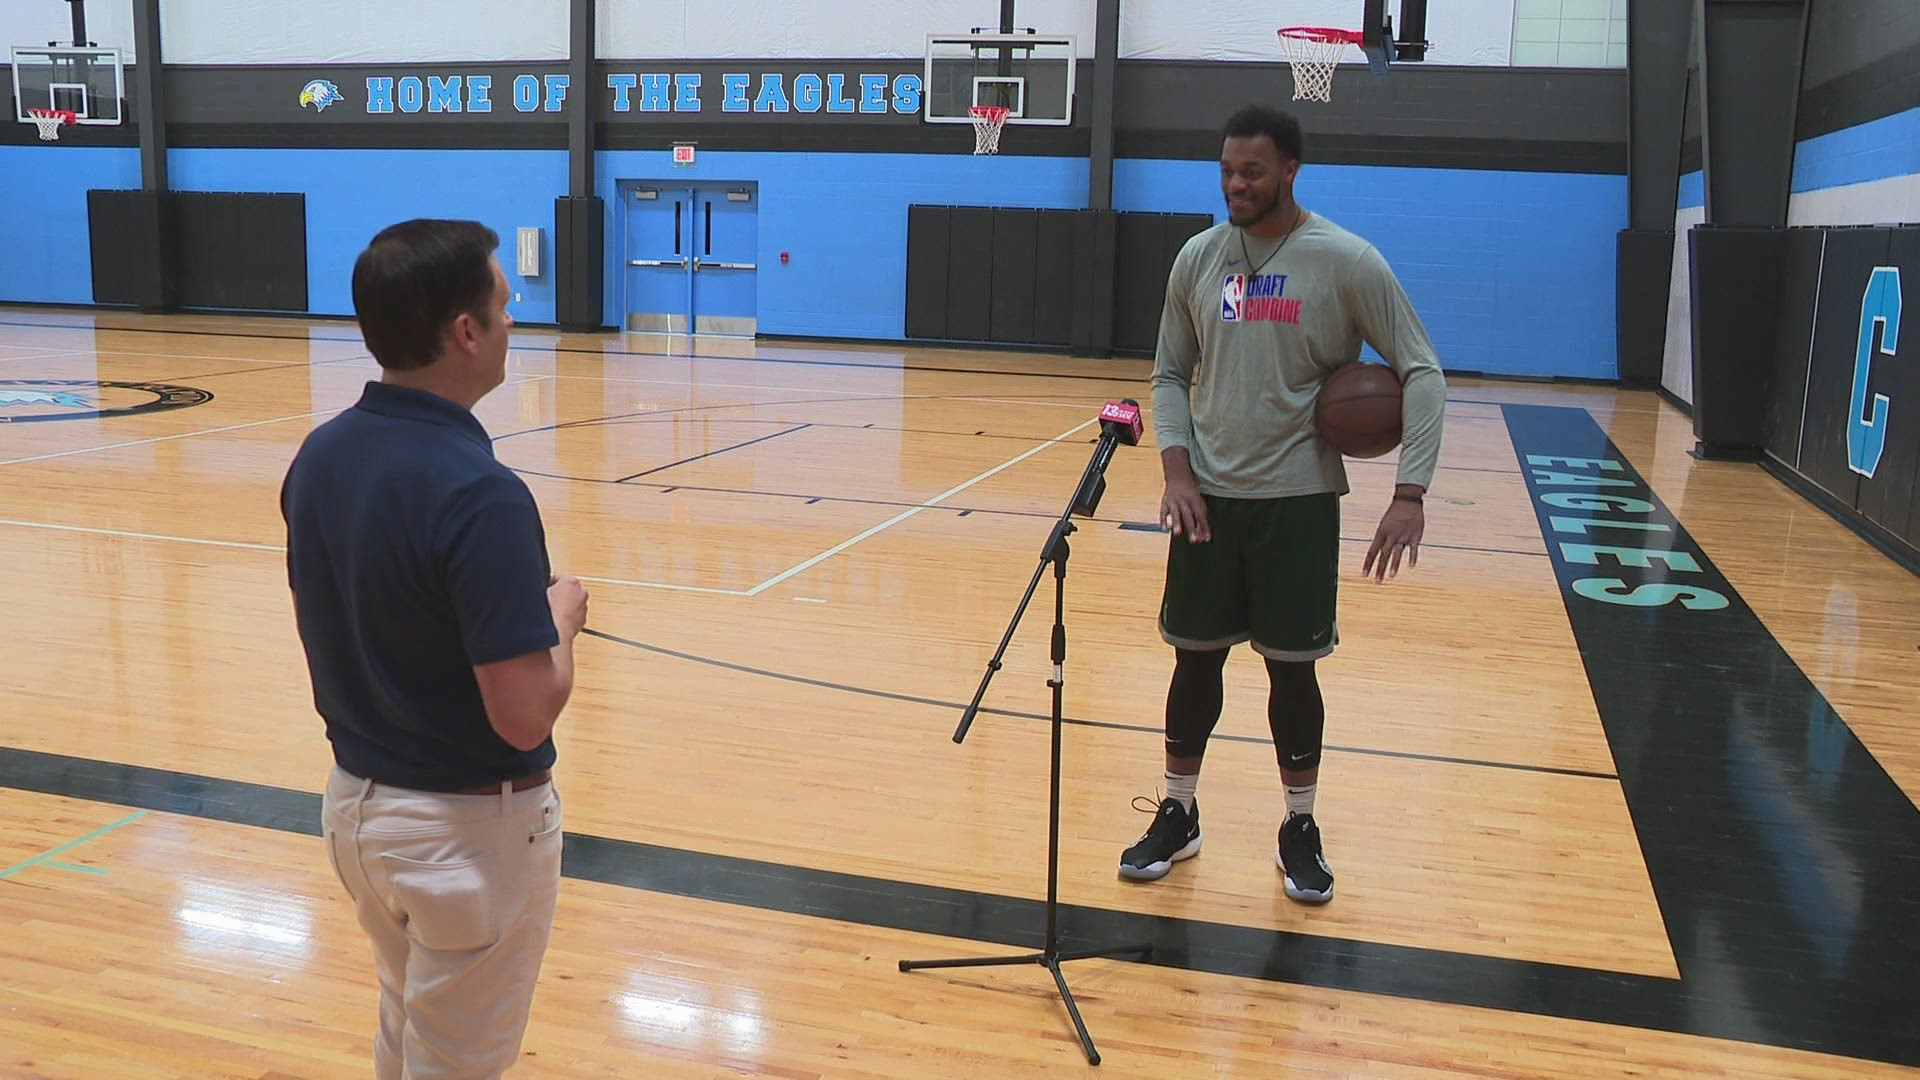 Ready For The Nba How Former Msu Star Xavier Tillman Took His Play To The Next Level With Just A Trainer A Ball And A Basketball Court Wbir Com